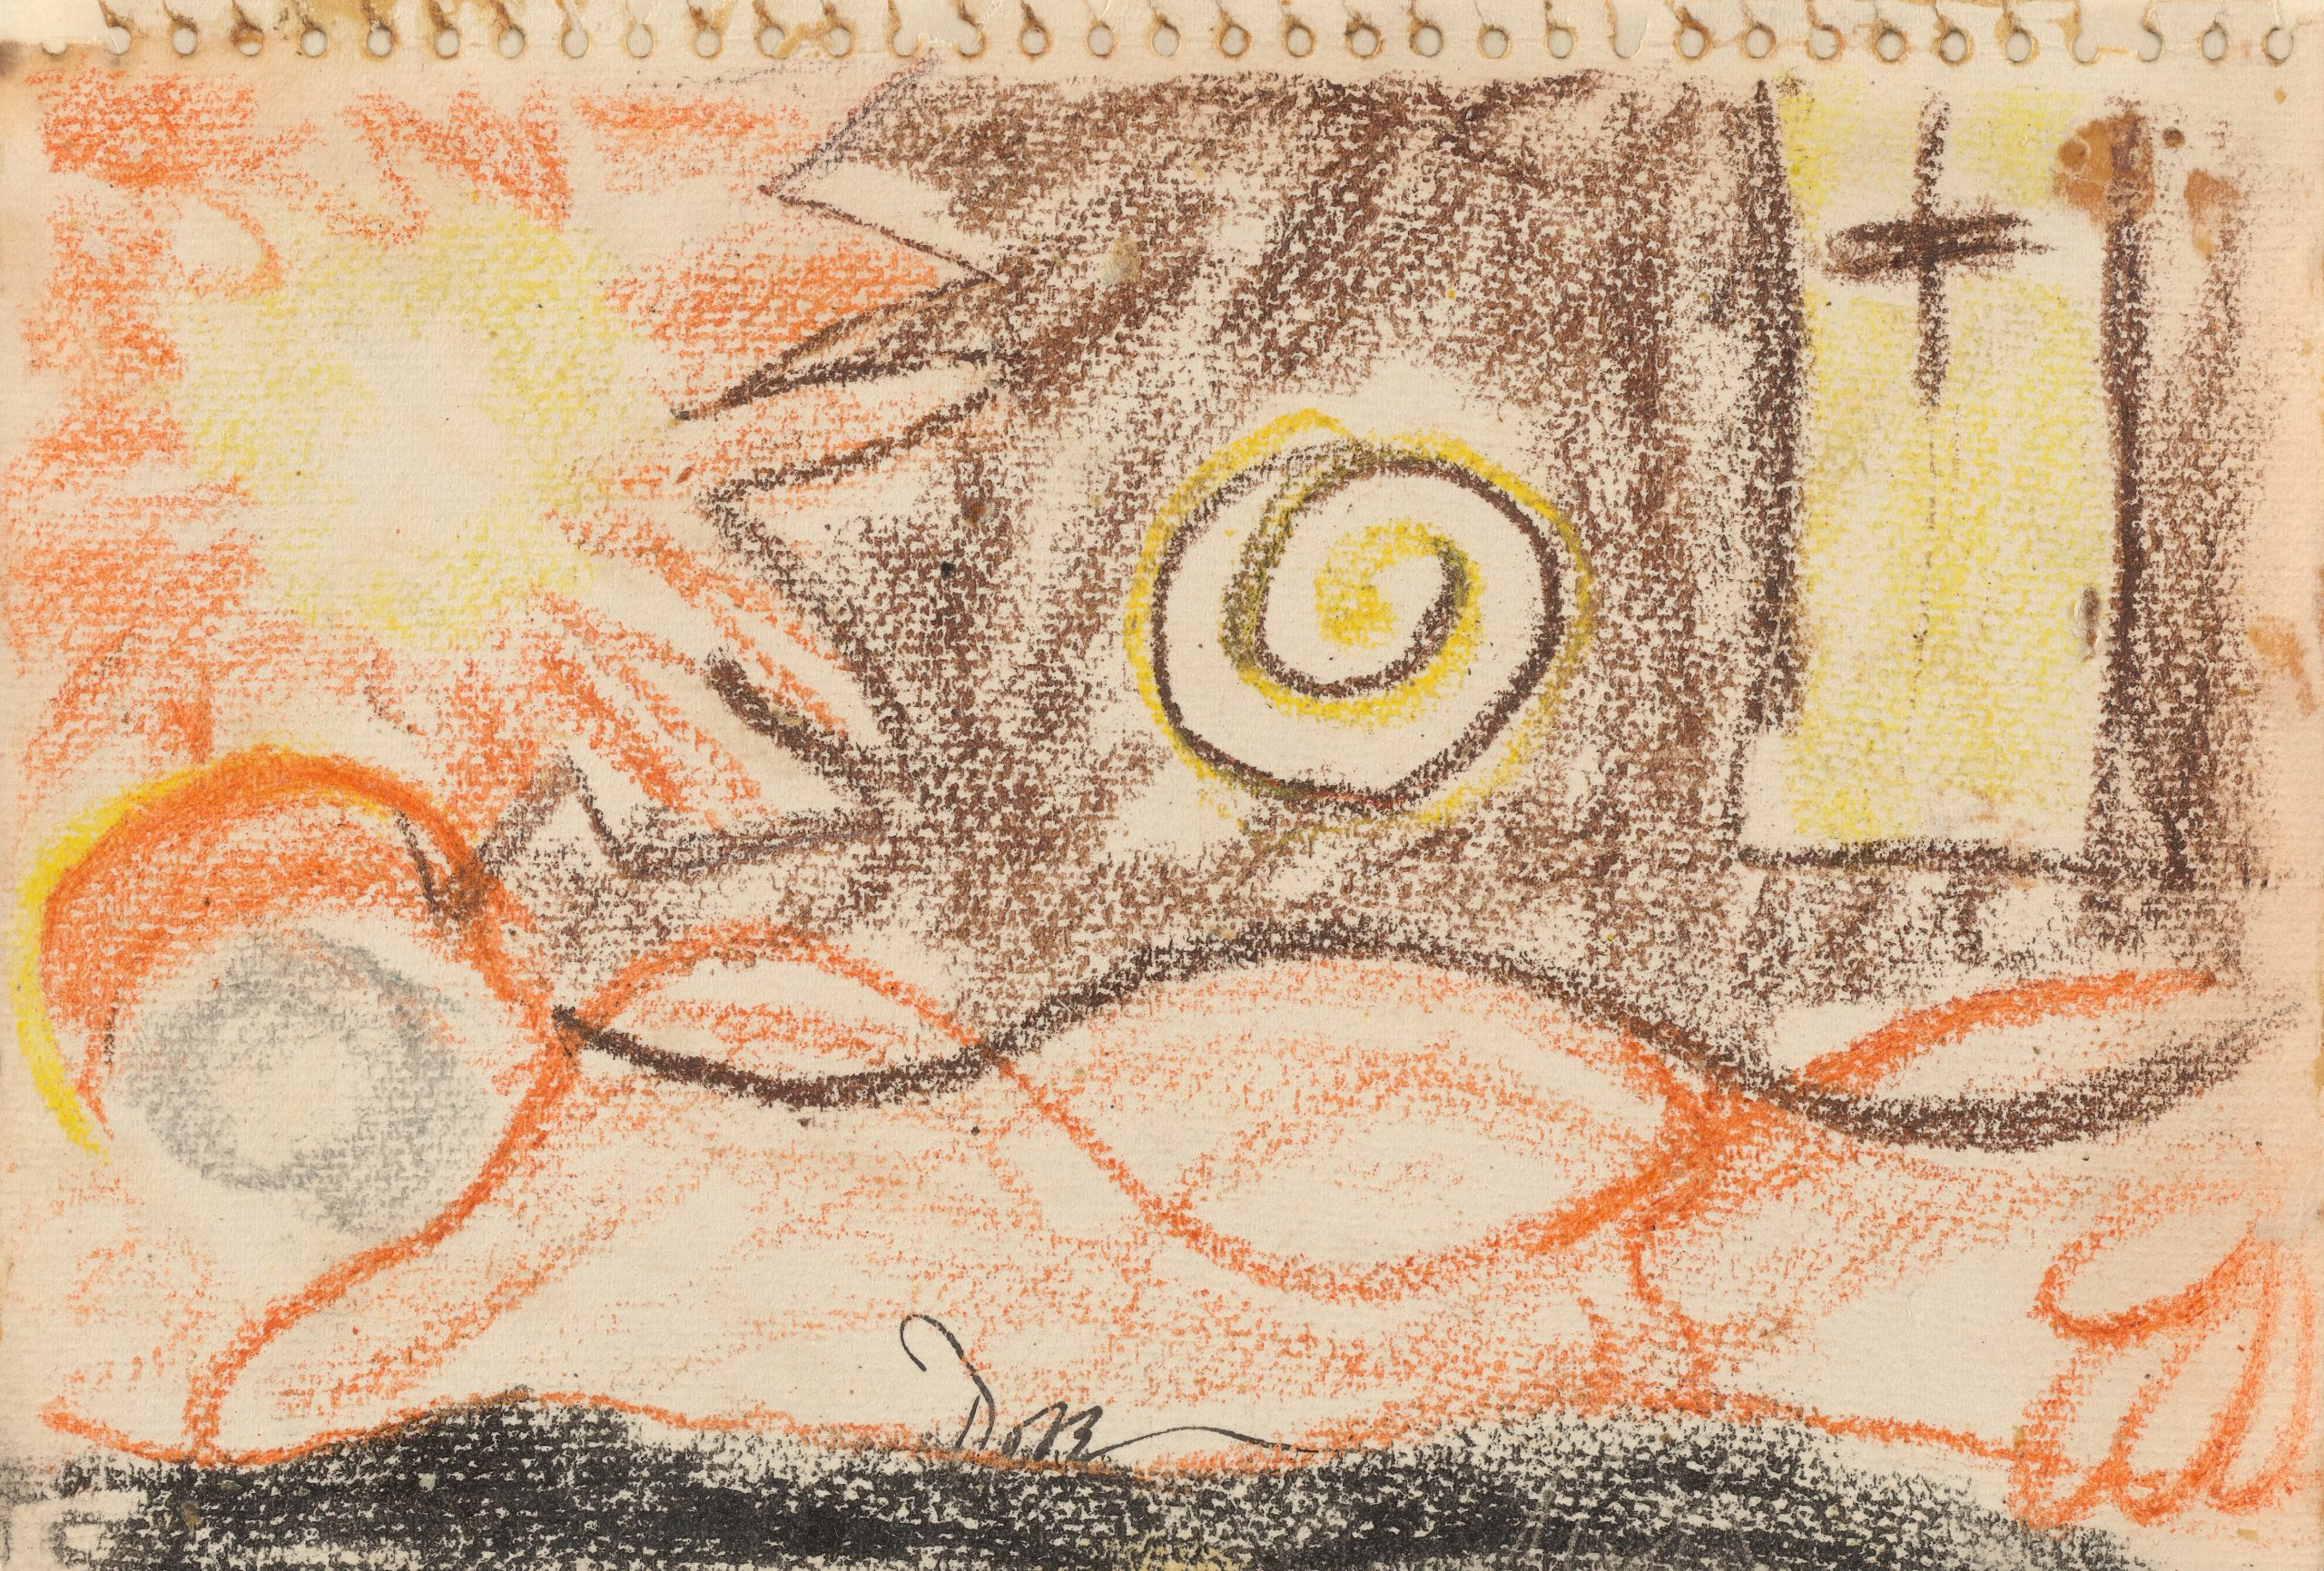 Orange, yellow, and brown crayon drawing of a sun rising over a landscape.